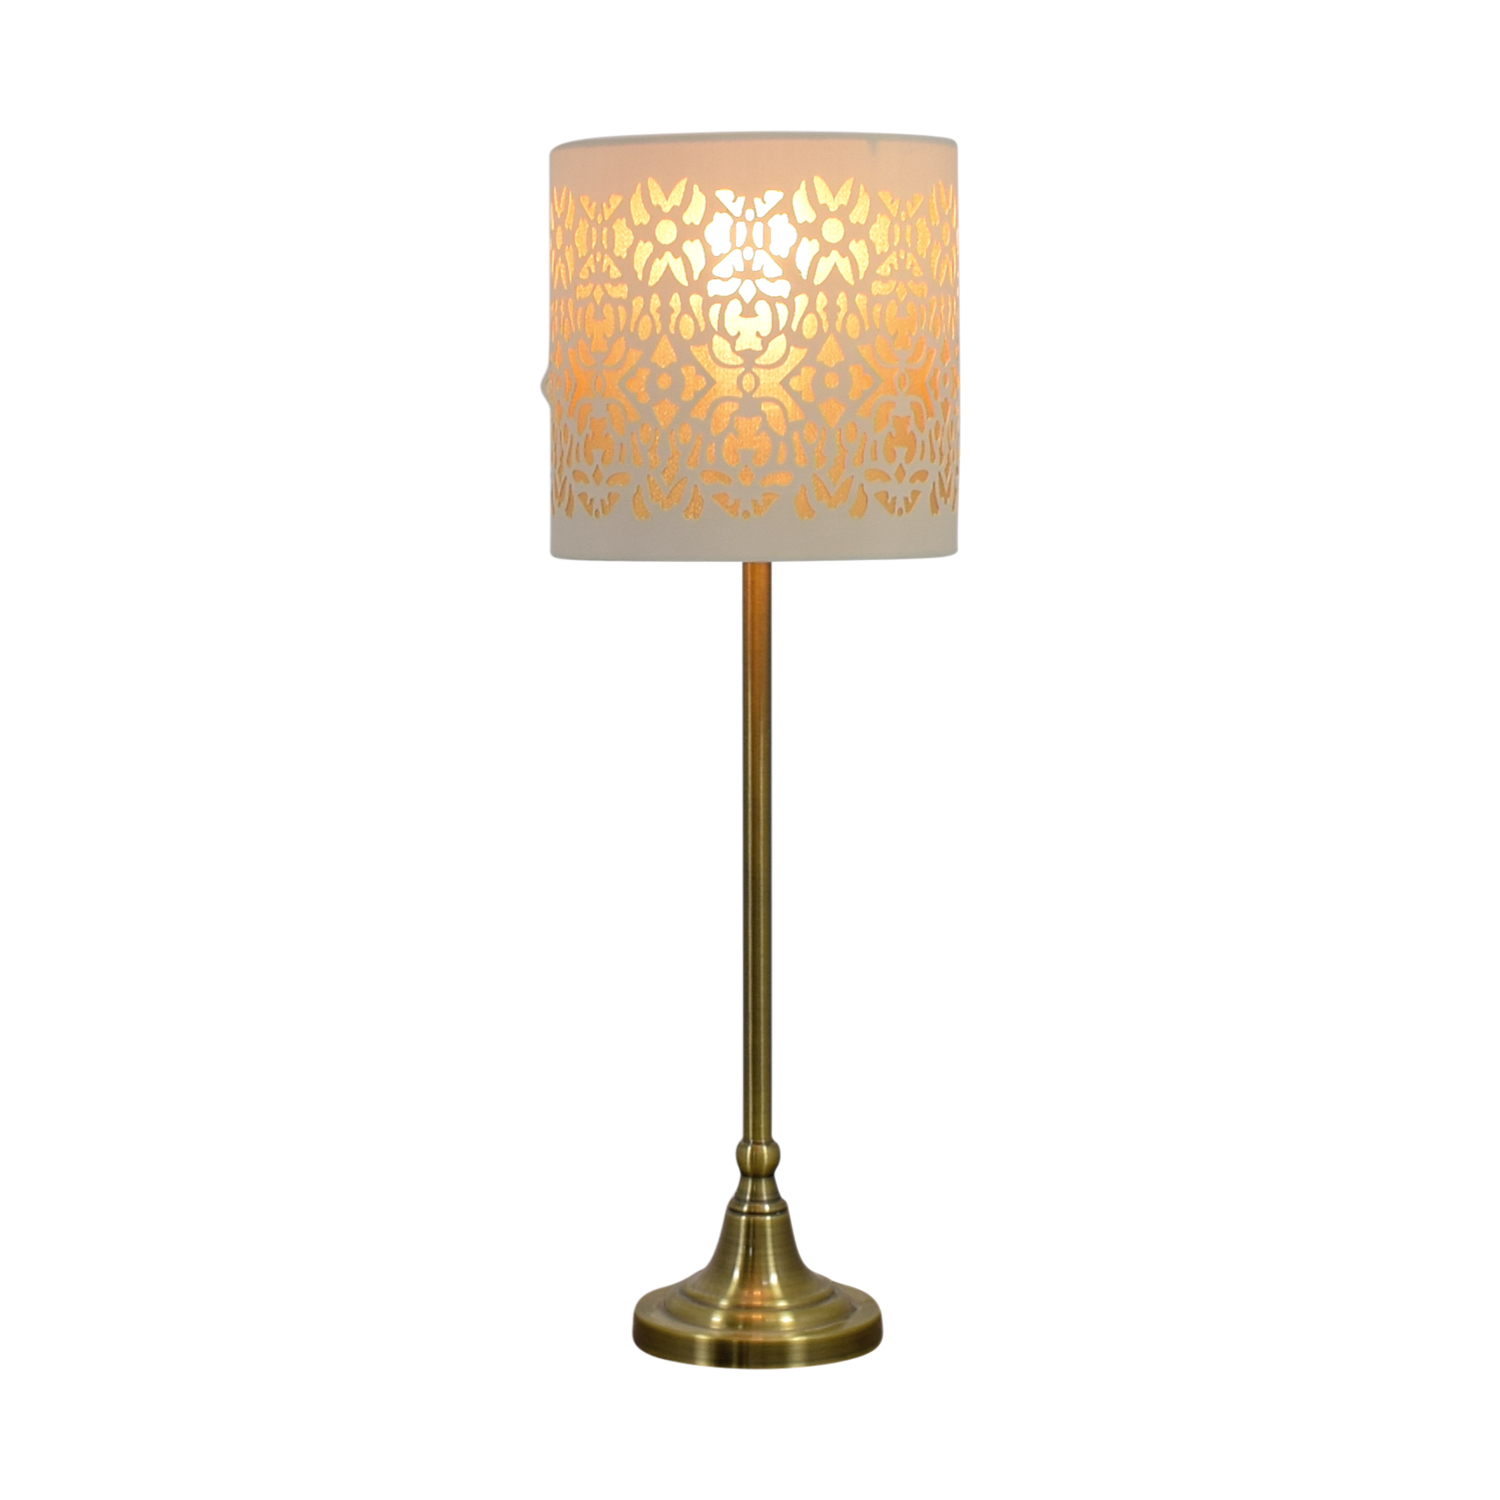 Cut Out White and Gold Table Lamp used